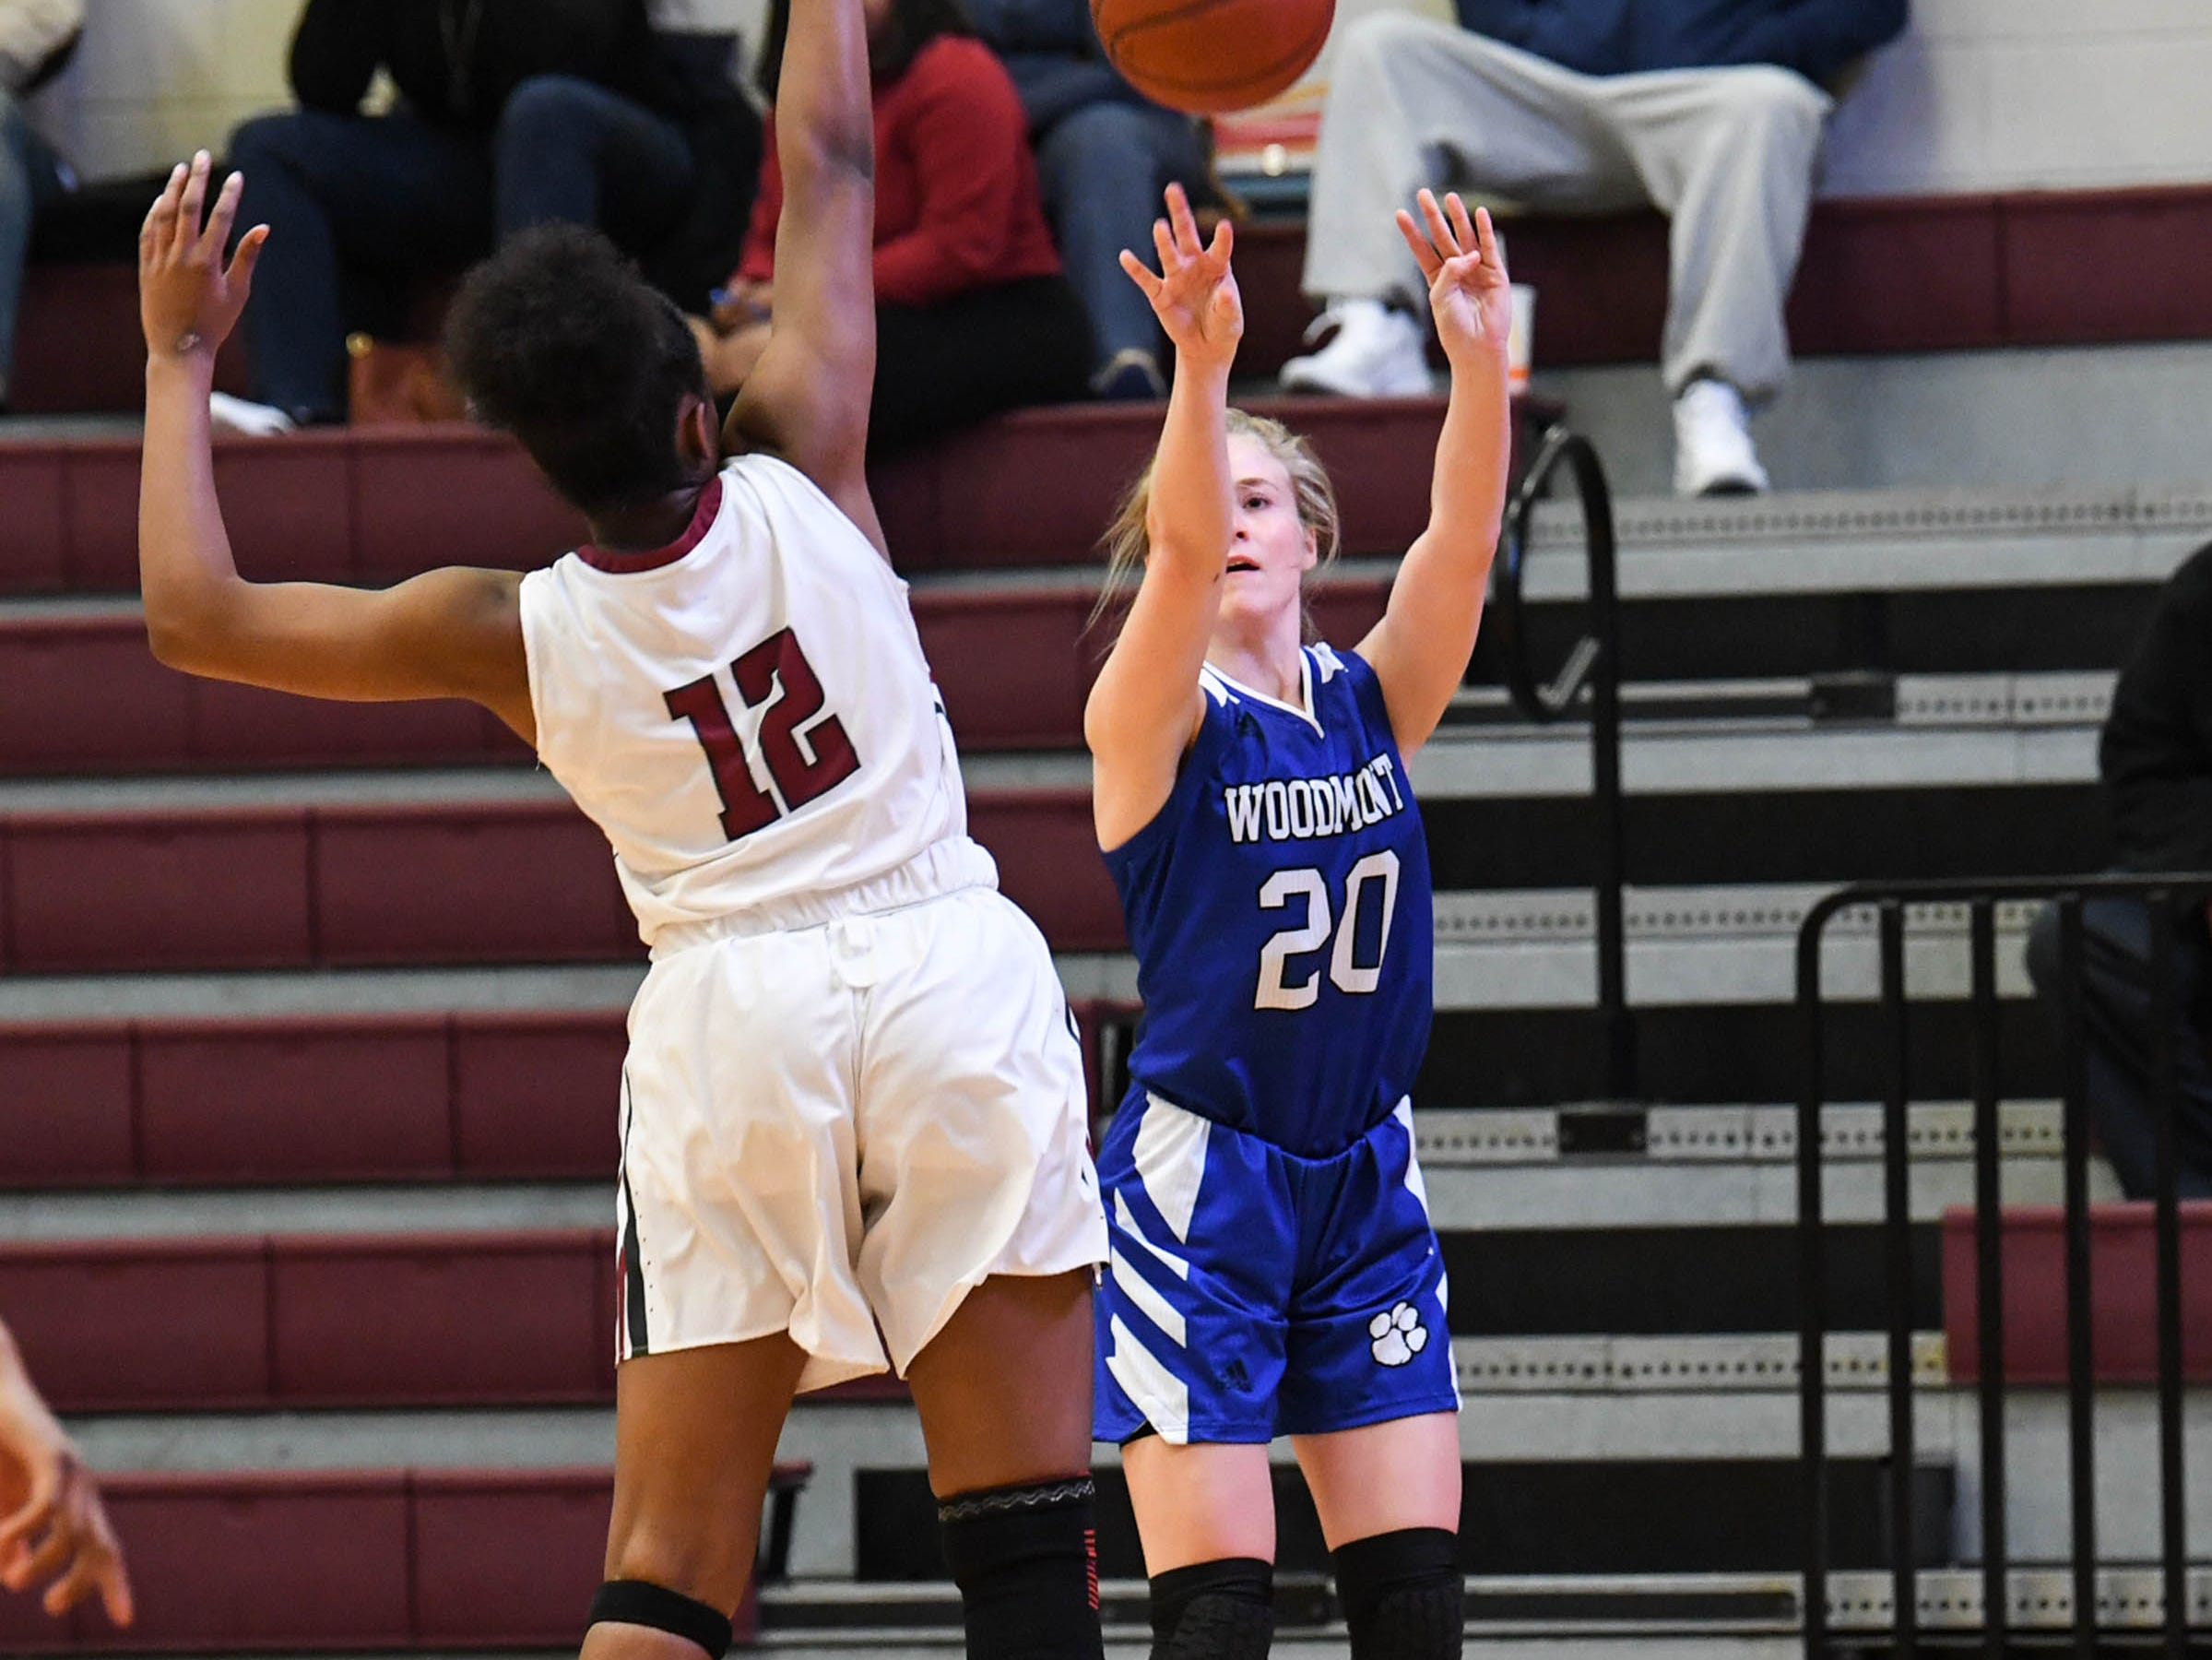 Woodmont senior Xan Rowland (20), right, shoots a 3-pointer over Westside freshman Branya Pruitt (12) during the first quarter at Westside High School in Anderson on Tuesday.